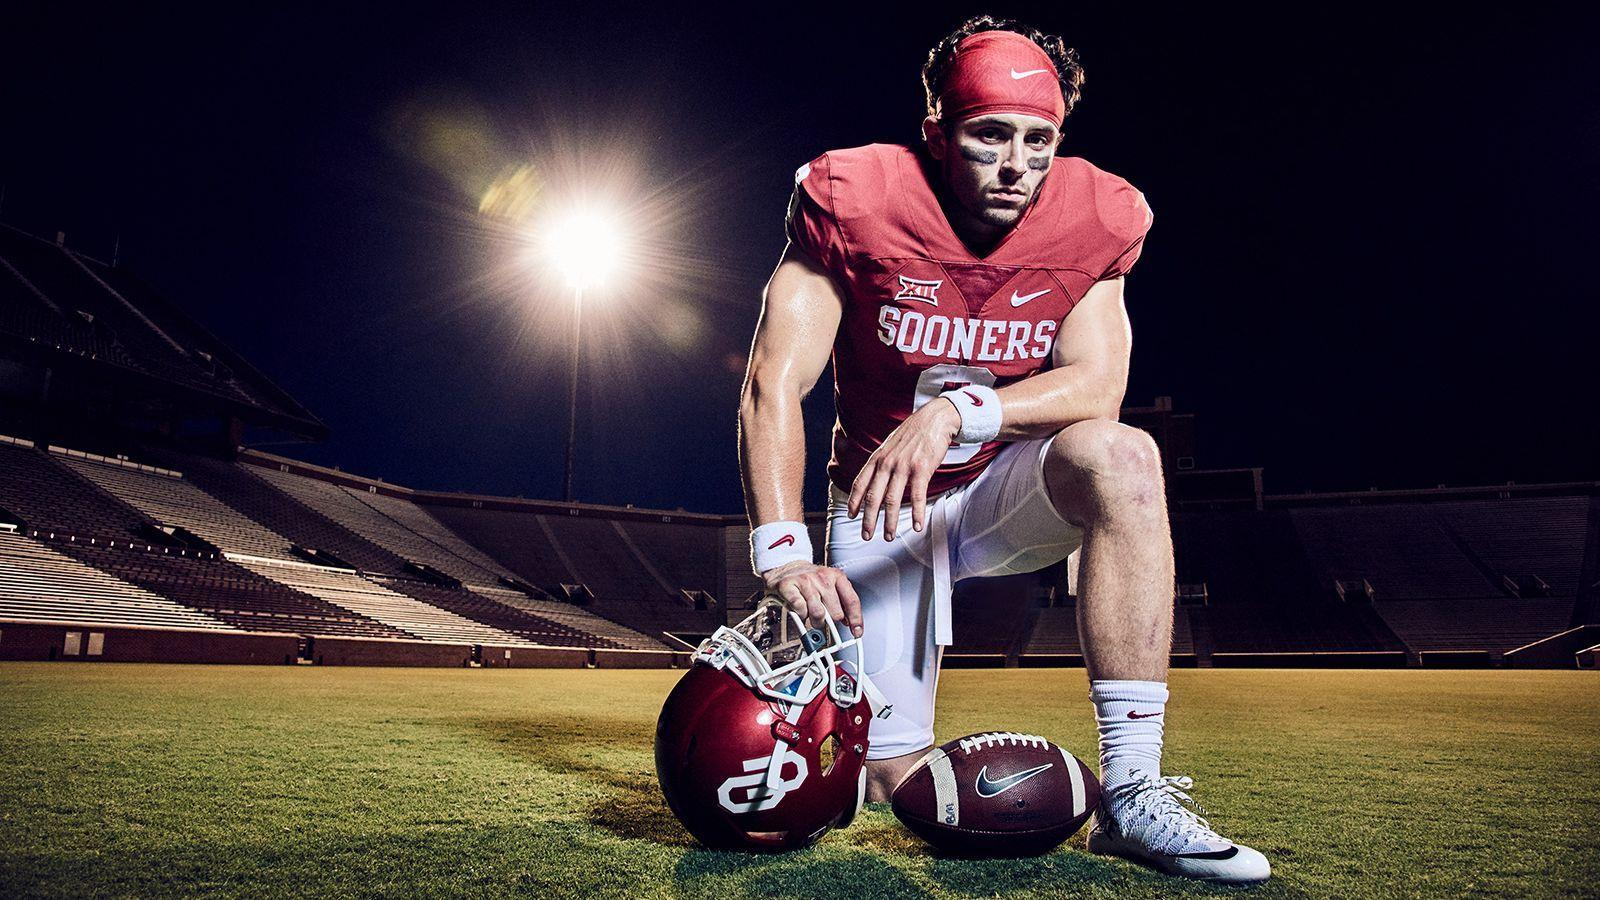 7348k Followers 768 Following 237 Posts See Instagram photos and videos from Baker Mayfield bakermayfield